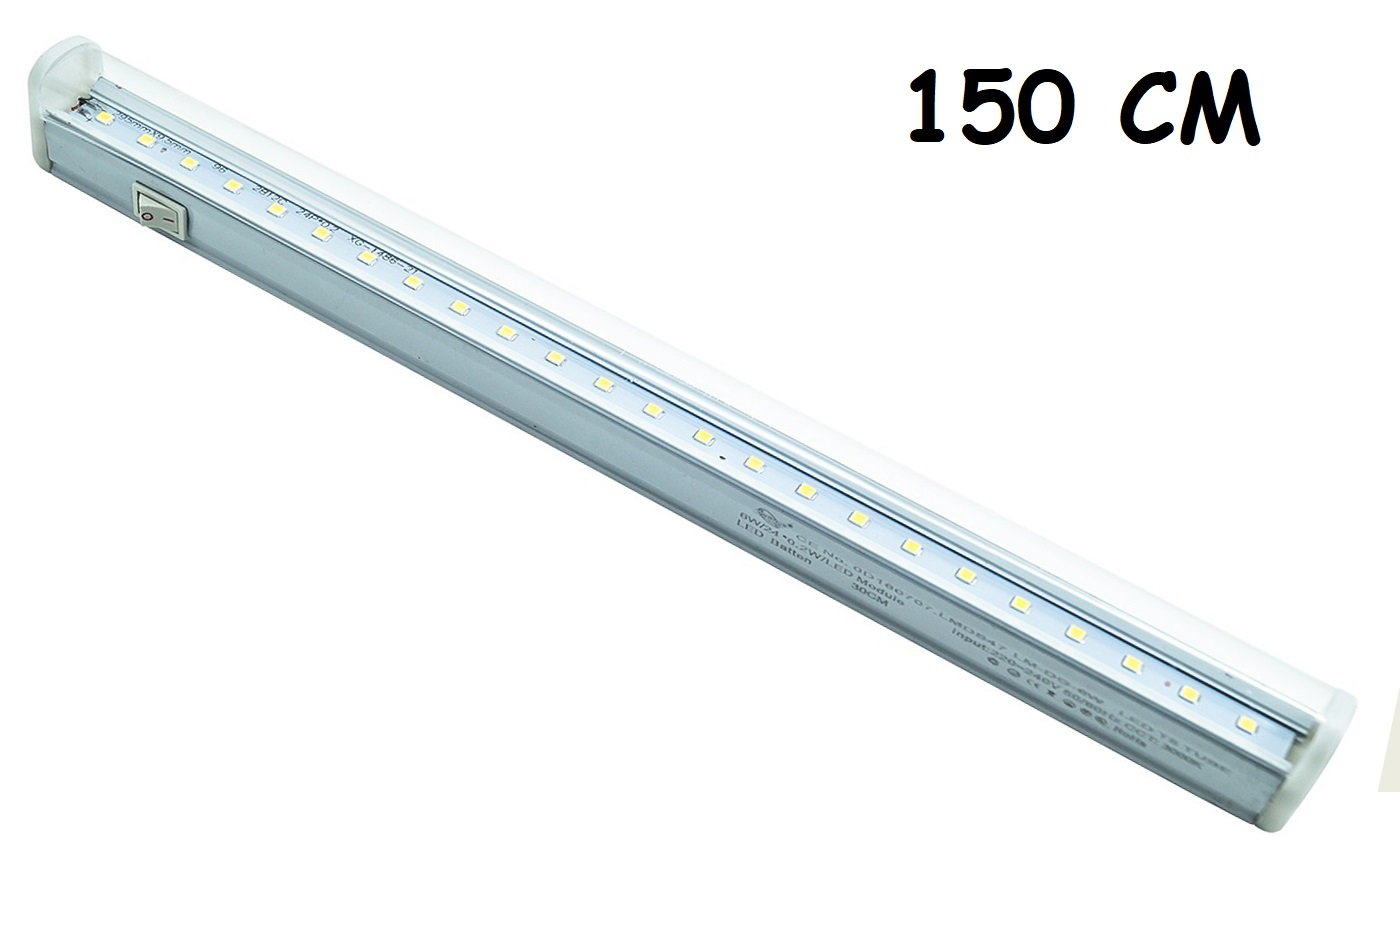 Plafoniera led sottopensile 150cm collegabile luce calda 36W neon barra led T5